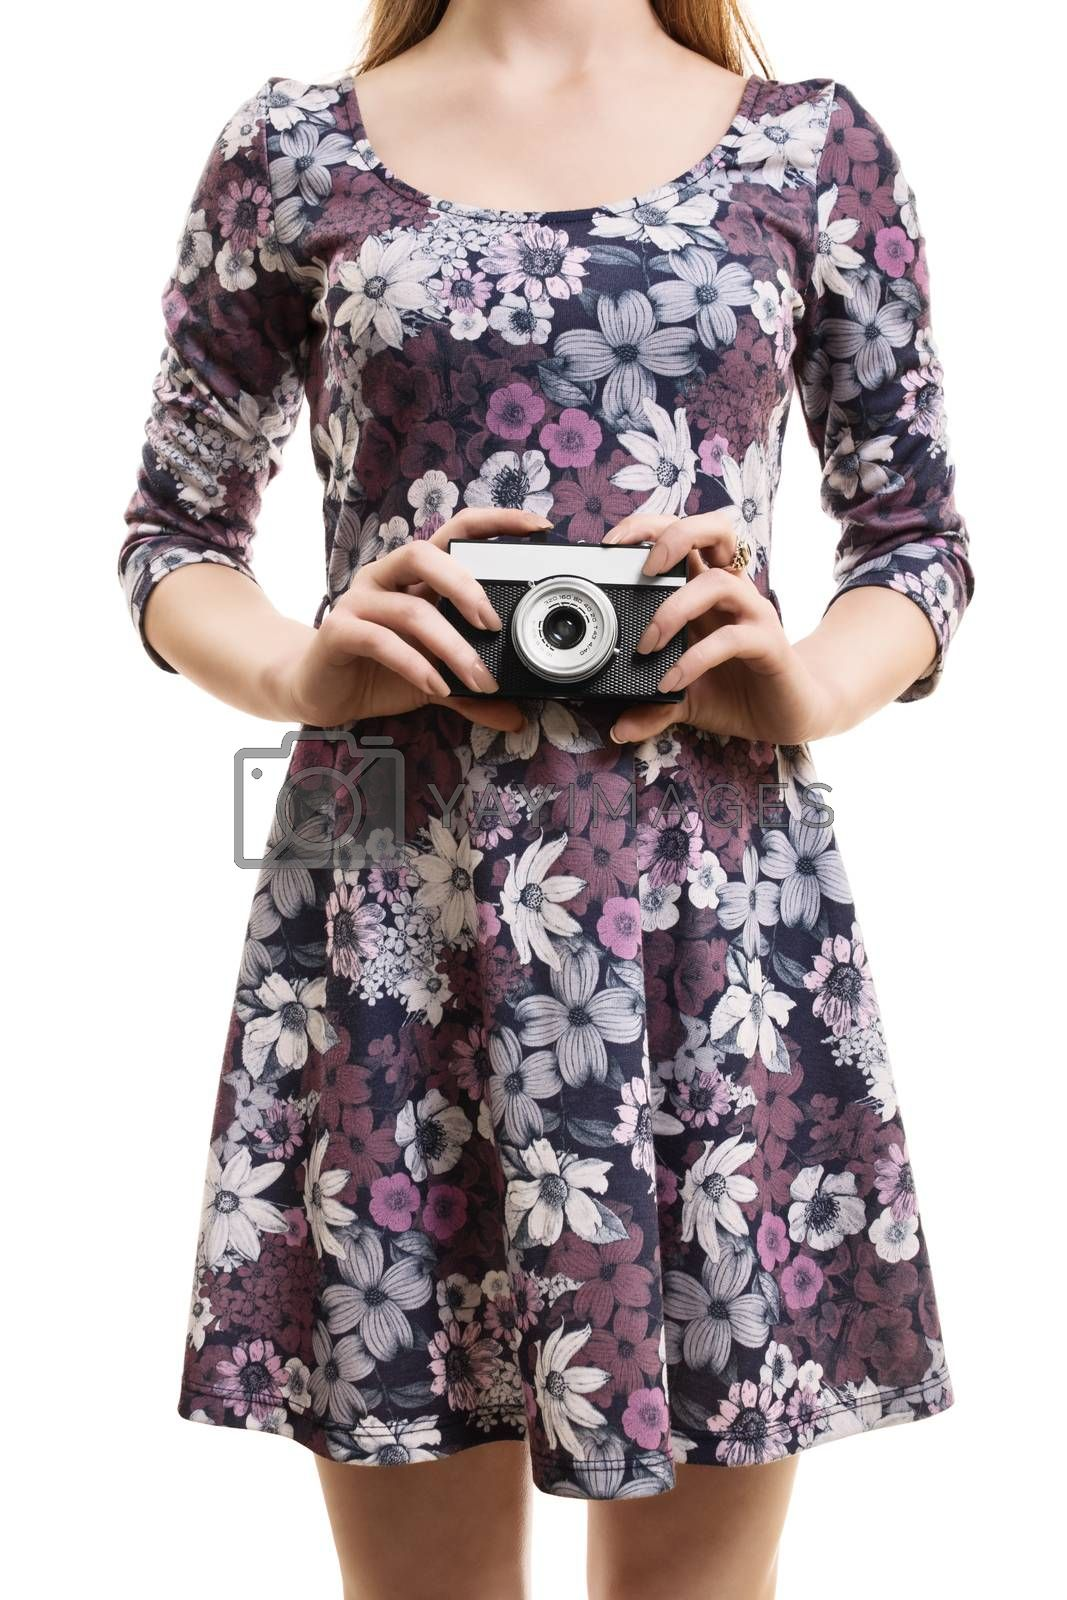 A close up shot of a girl in a colorful dress, hodling a vintage camera, isolated on white background.